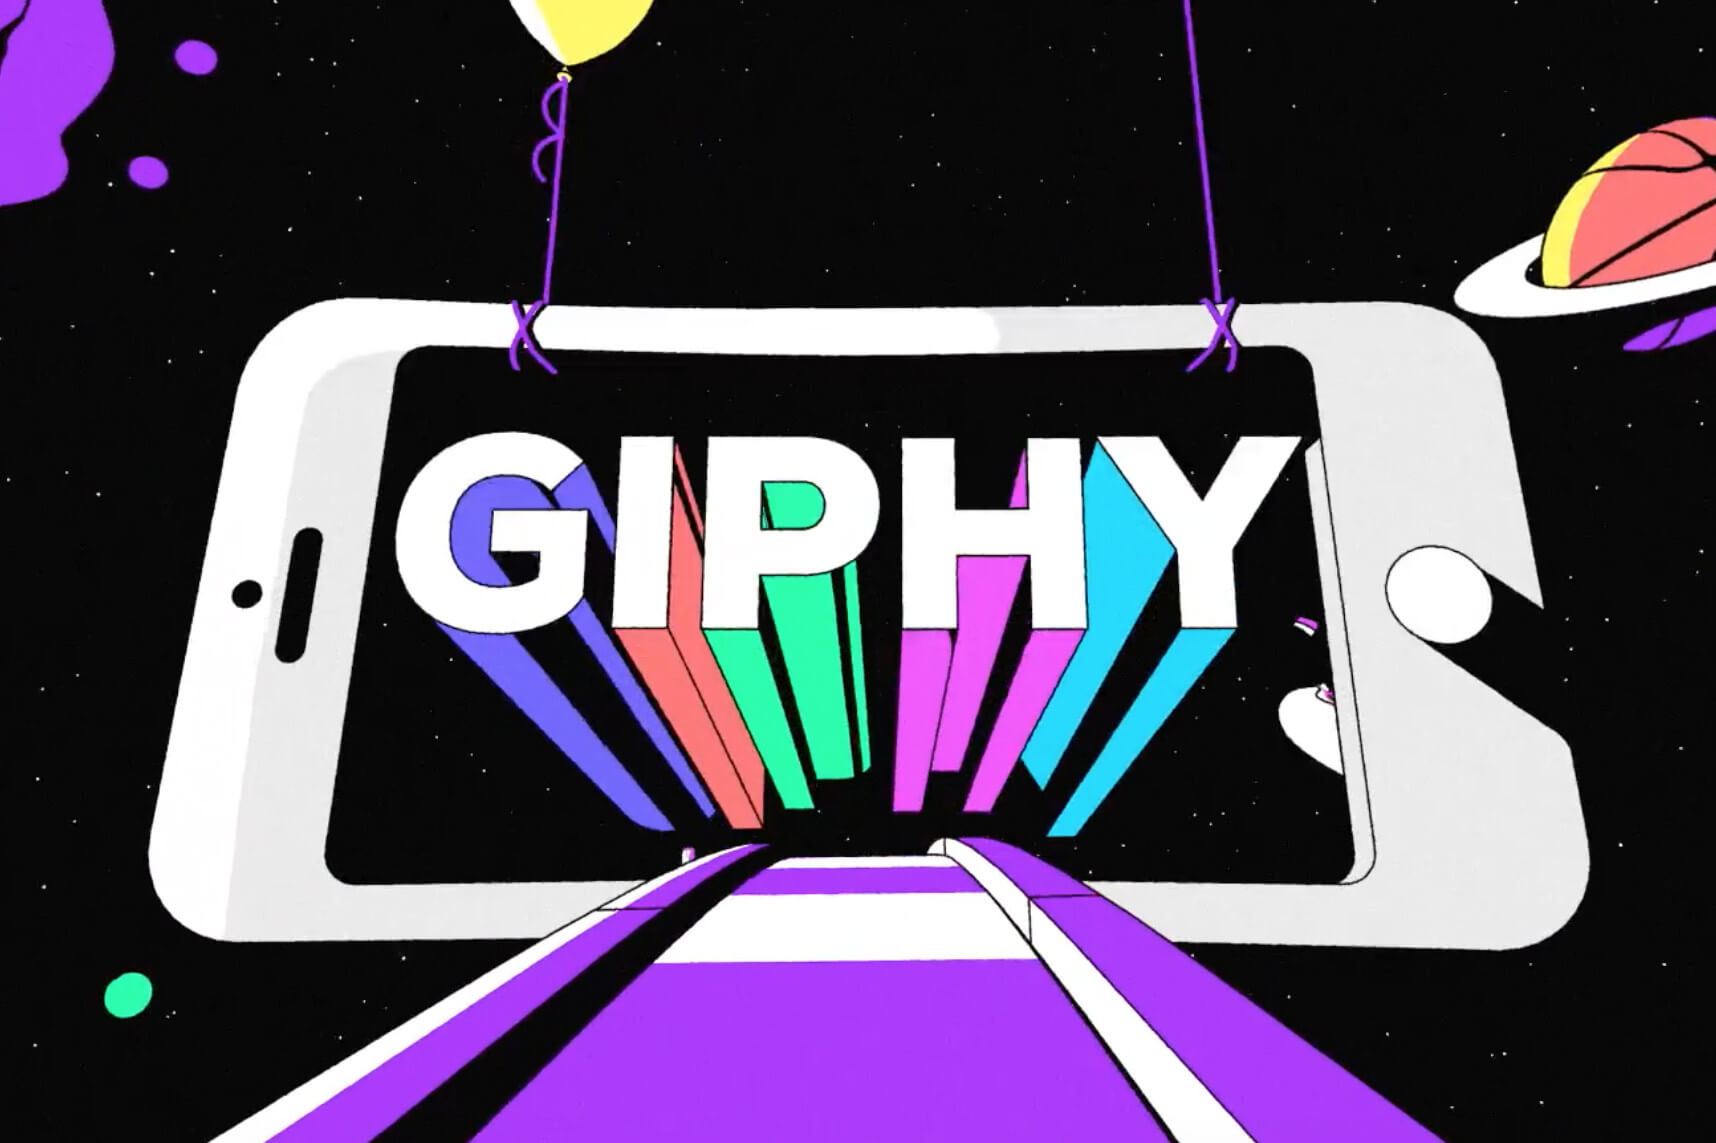 UK antitrust watchdog launches investigation into Facebook's acquisition of Giphy - RapidAPI